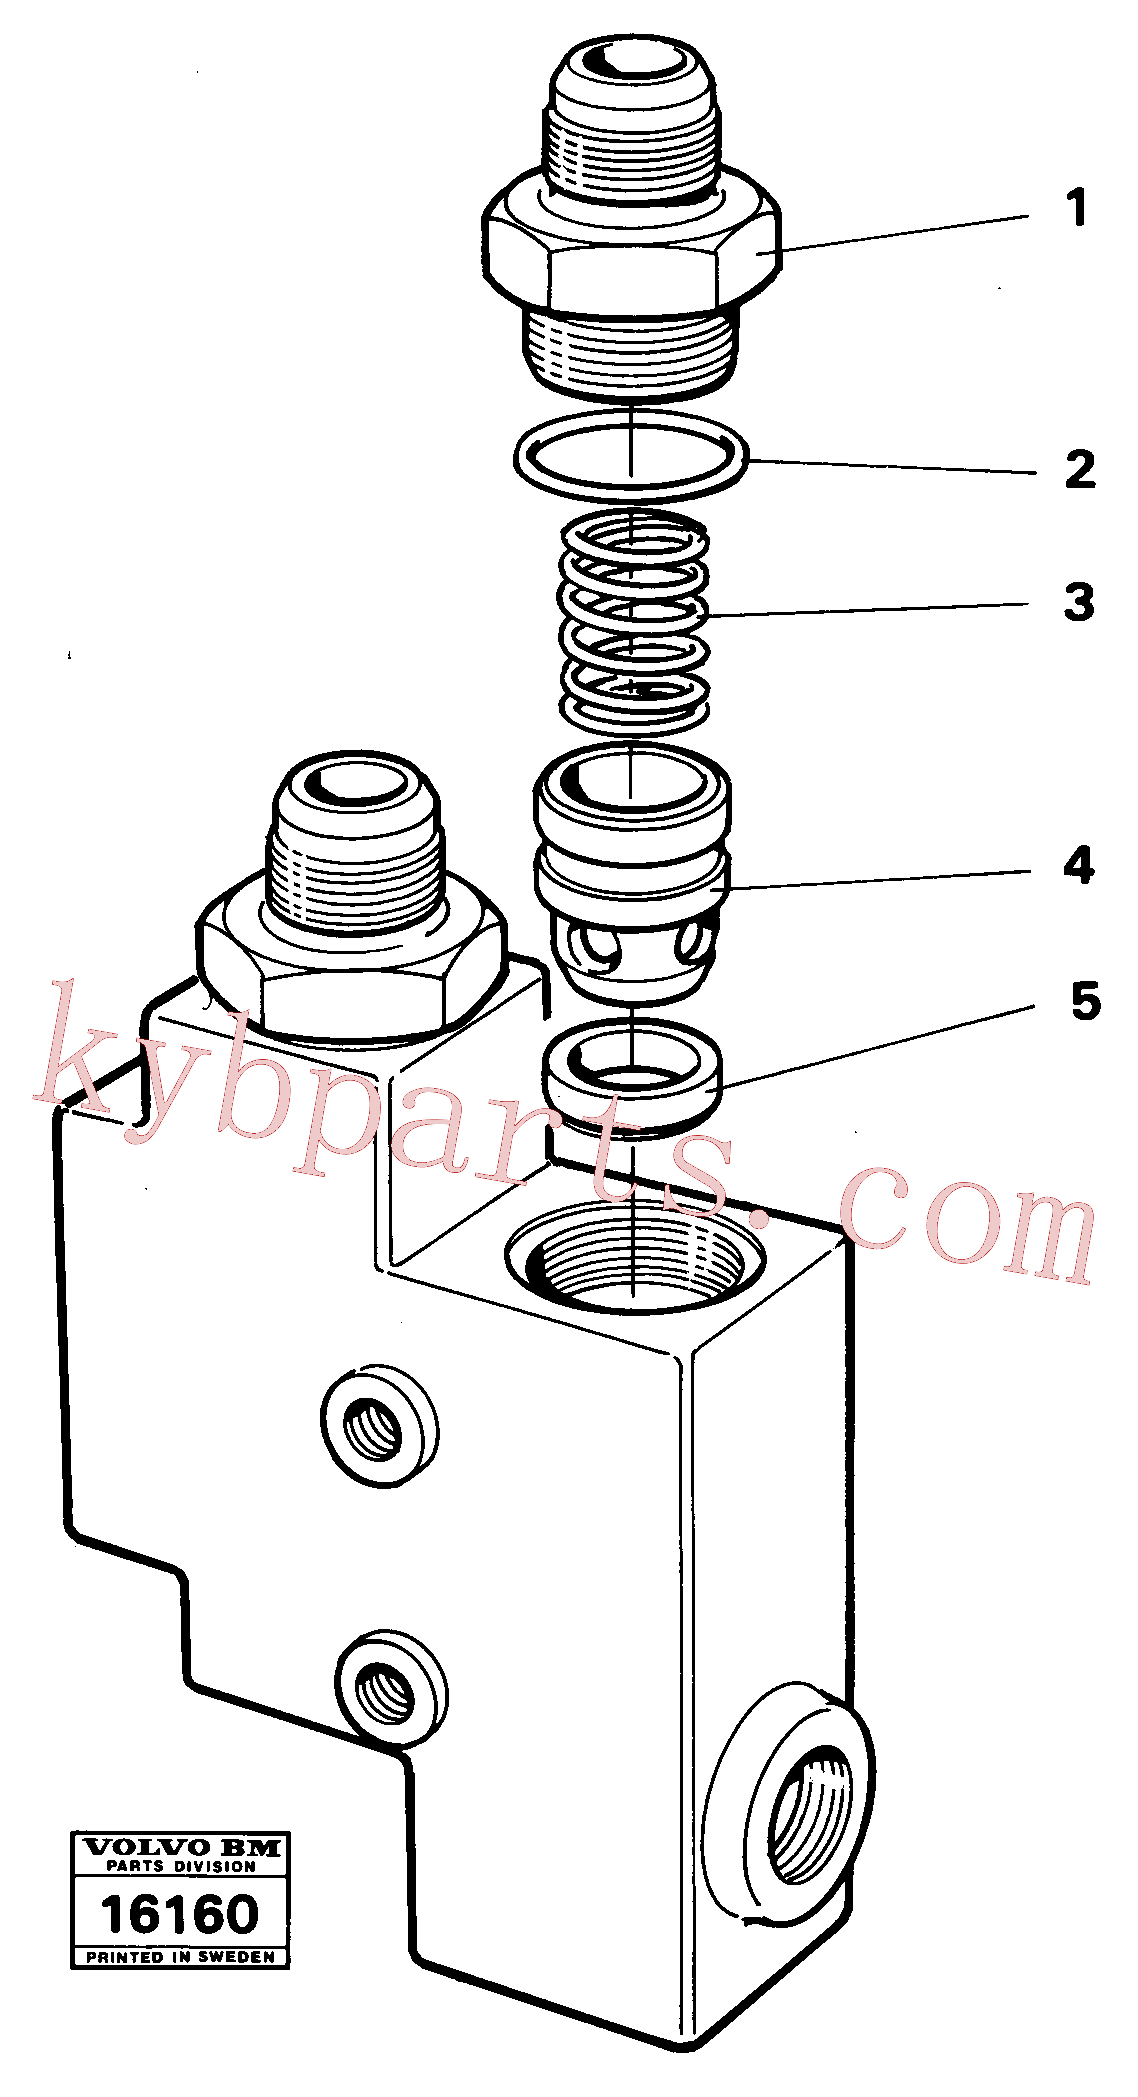 VOE4864483 for Volvo Check valve(16160 assembly)